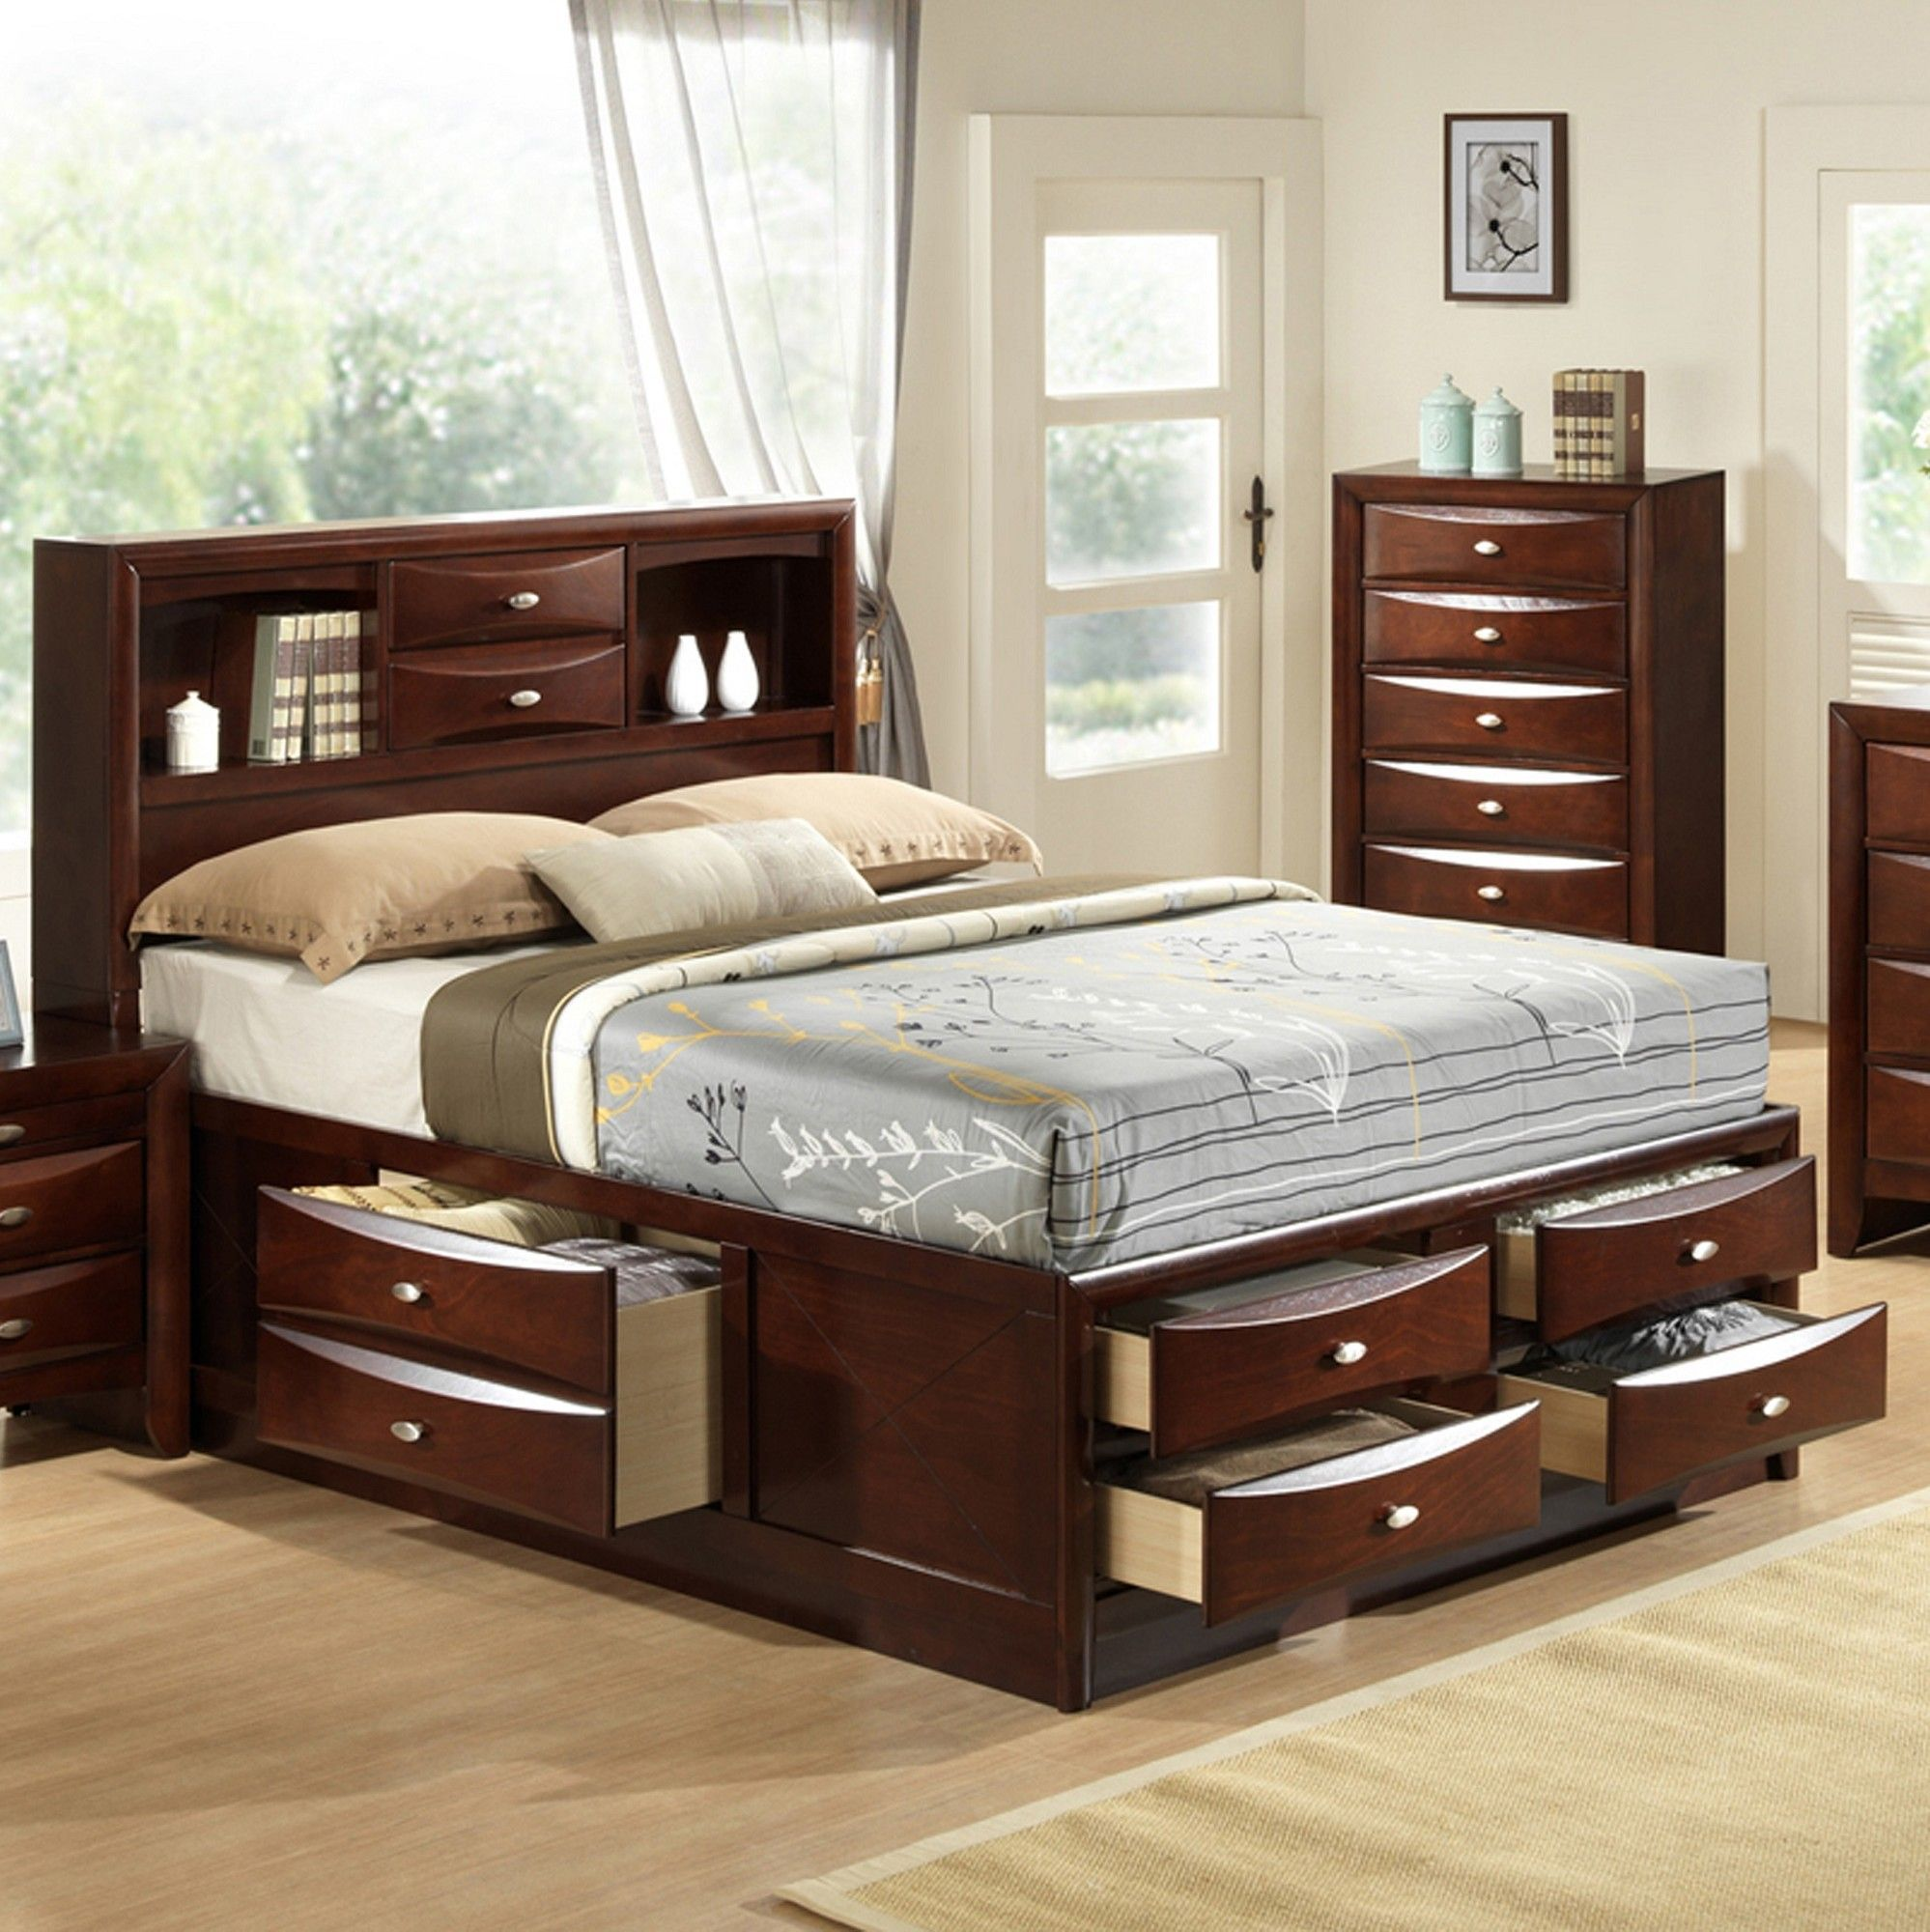 Features: -2 Drawers and 2 open storage\'s for the headboard, 6 ...